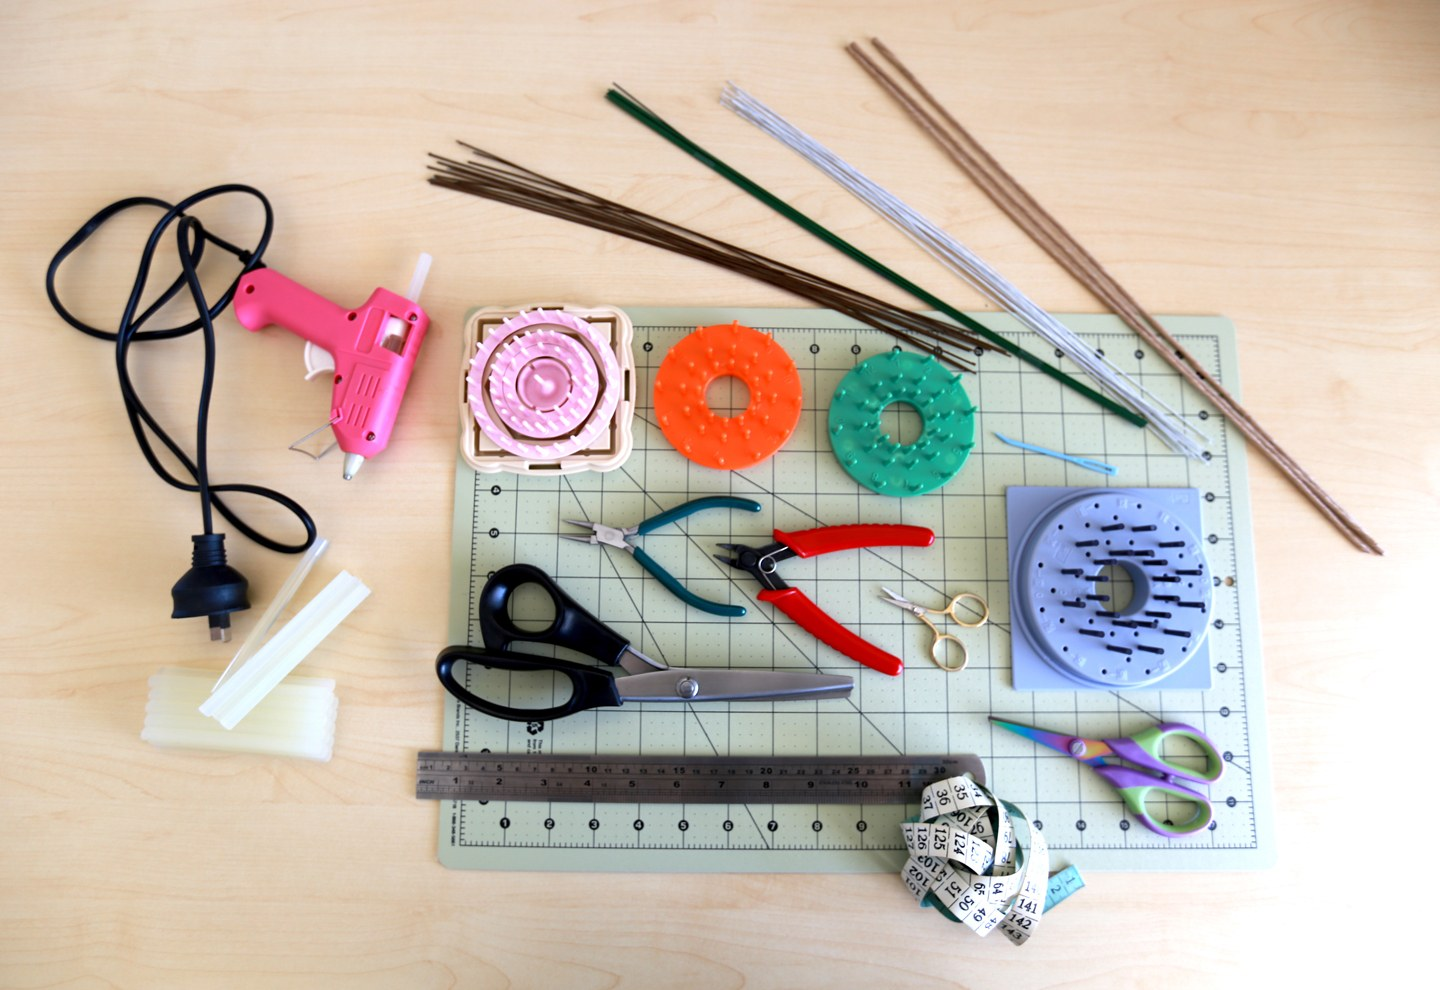 Flower-making tools; wire, pliers, scissors, hot glue gun, measuring tape, and mini looms in various sizes